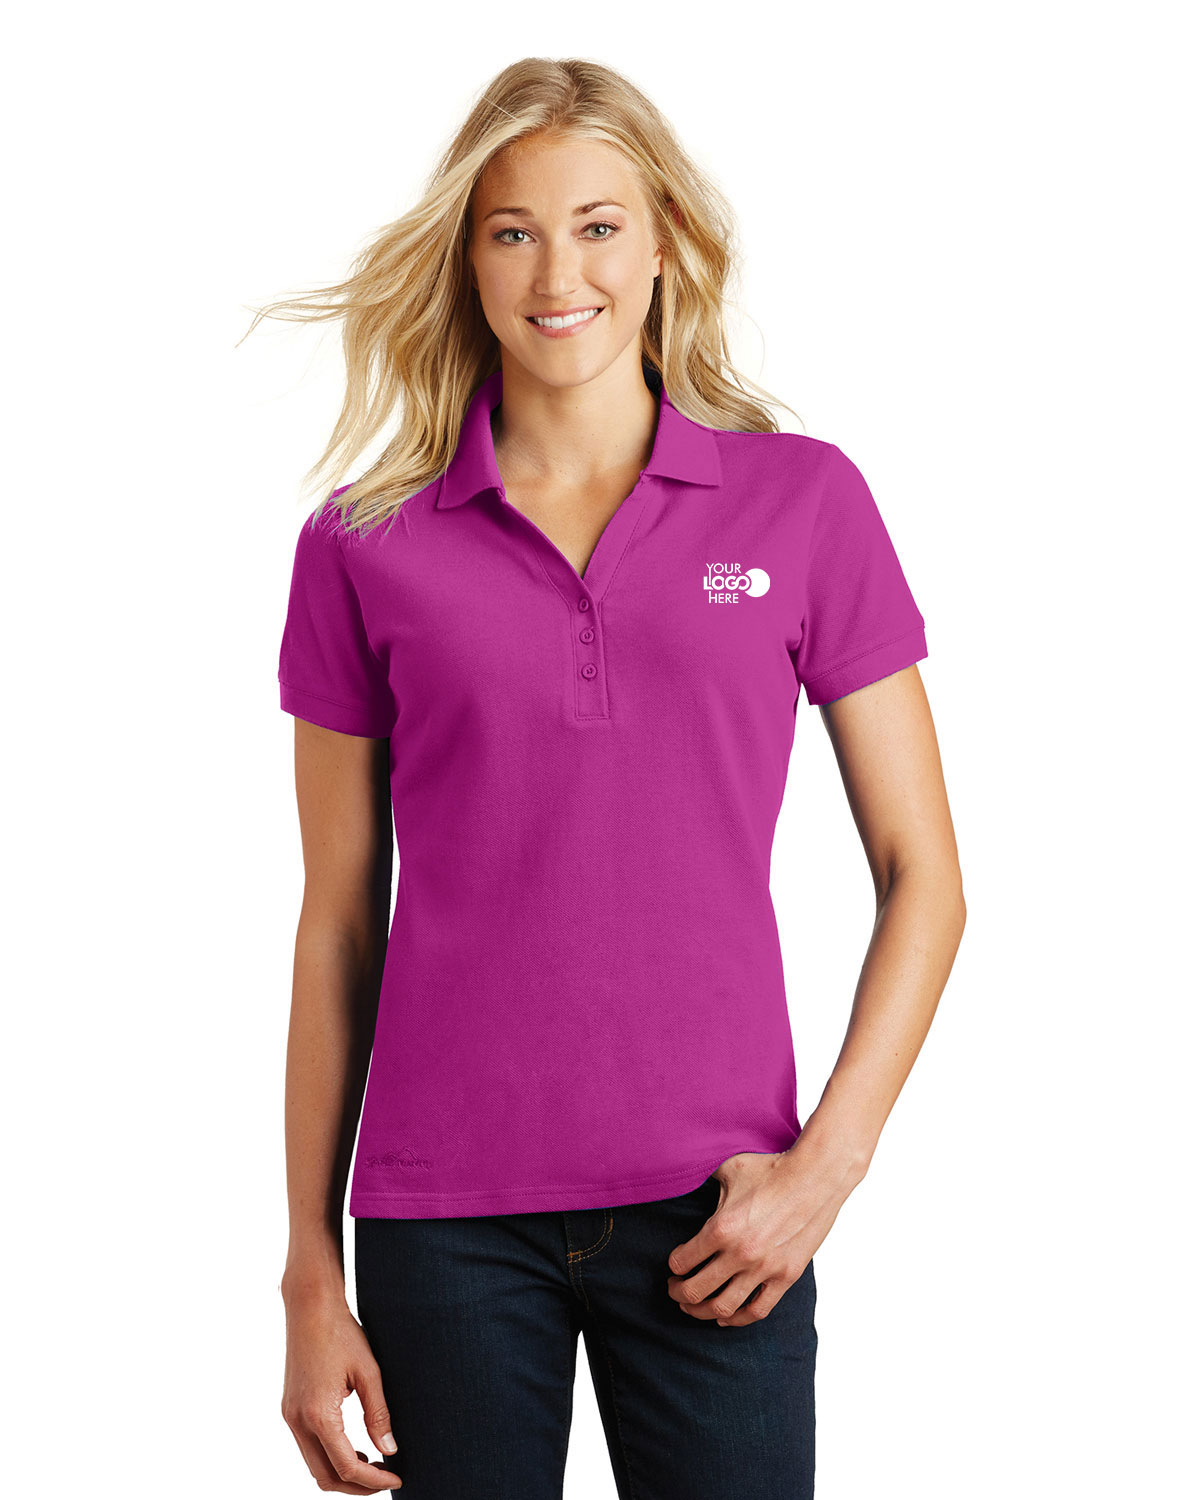 Eddie Bauer EB101 Women Cotton Pique Polo Shirt